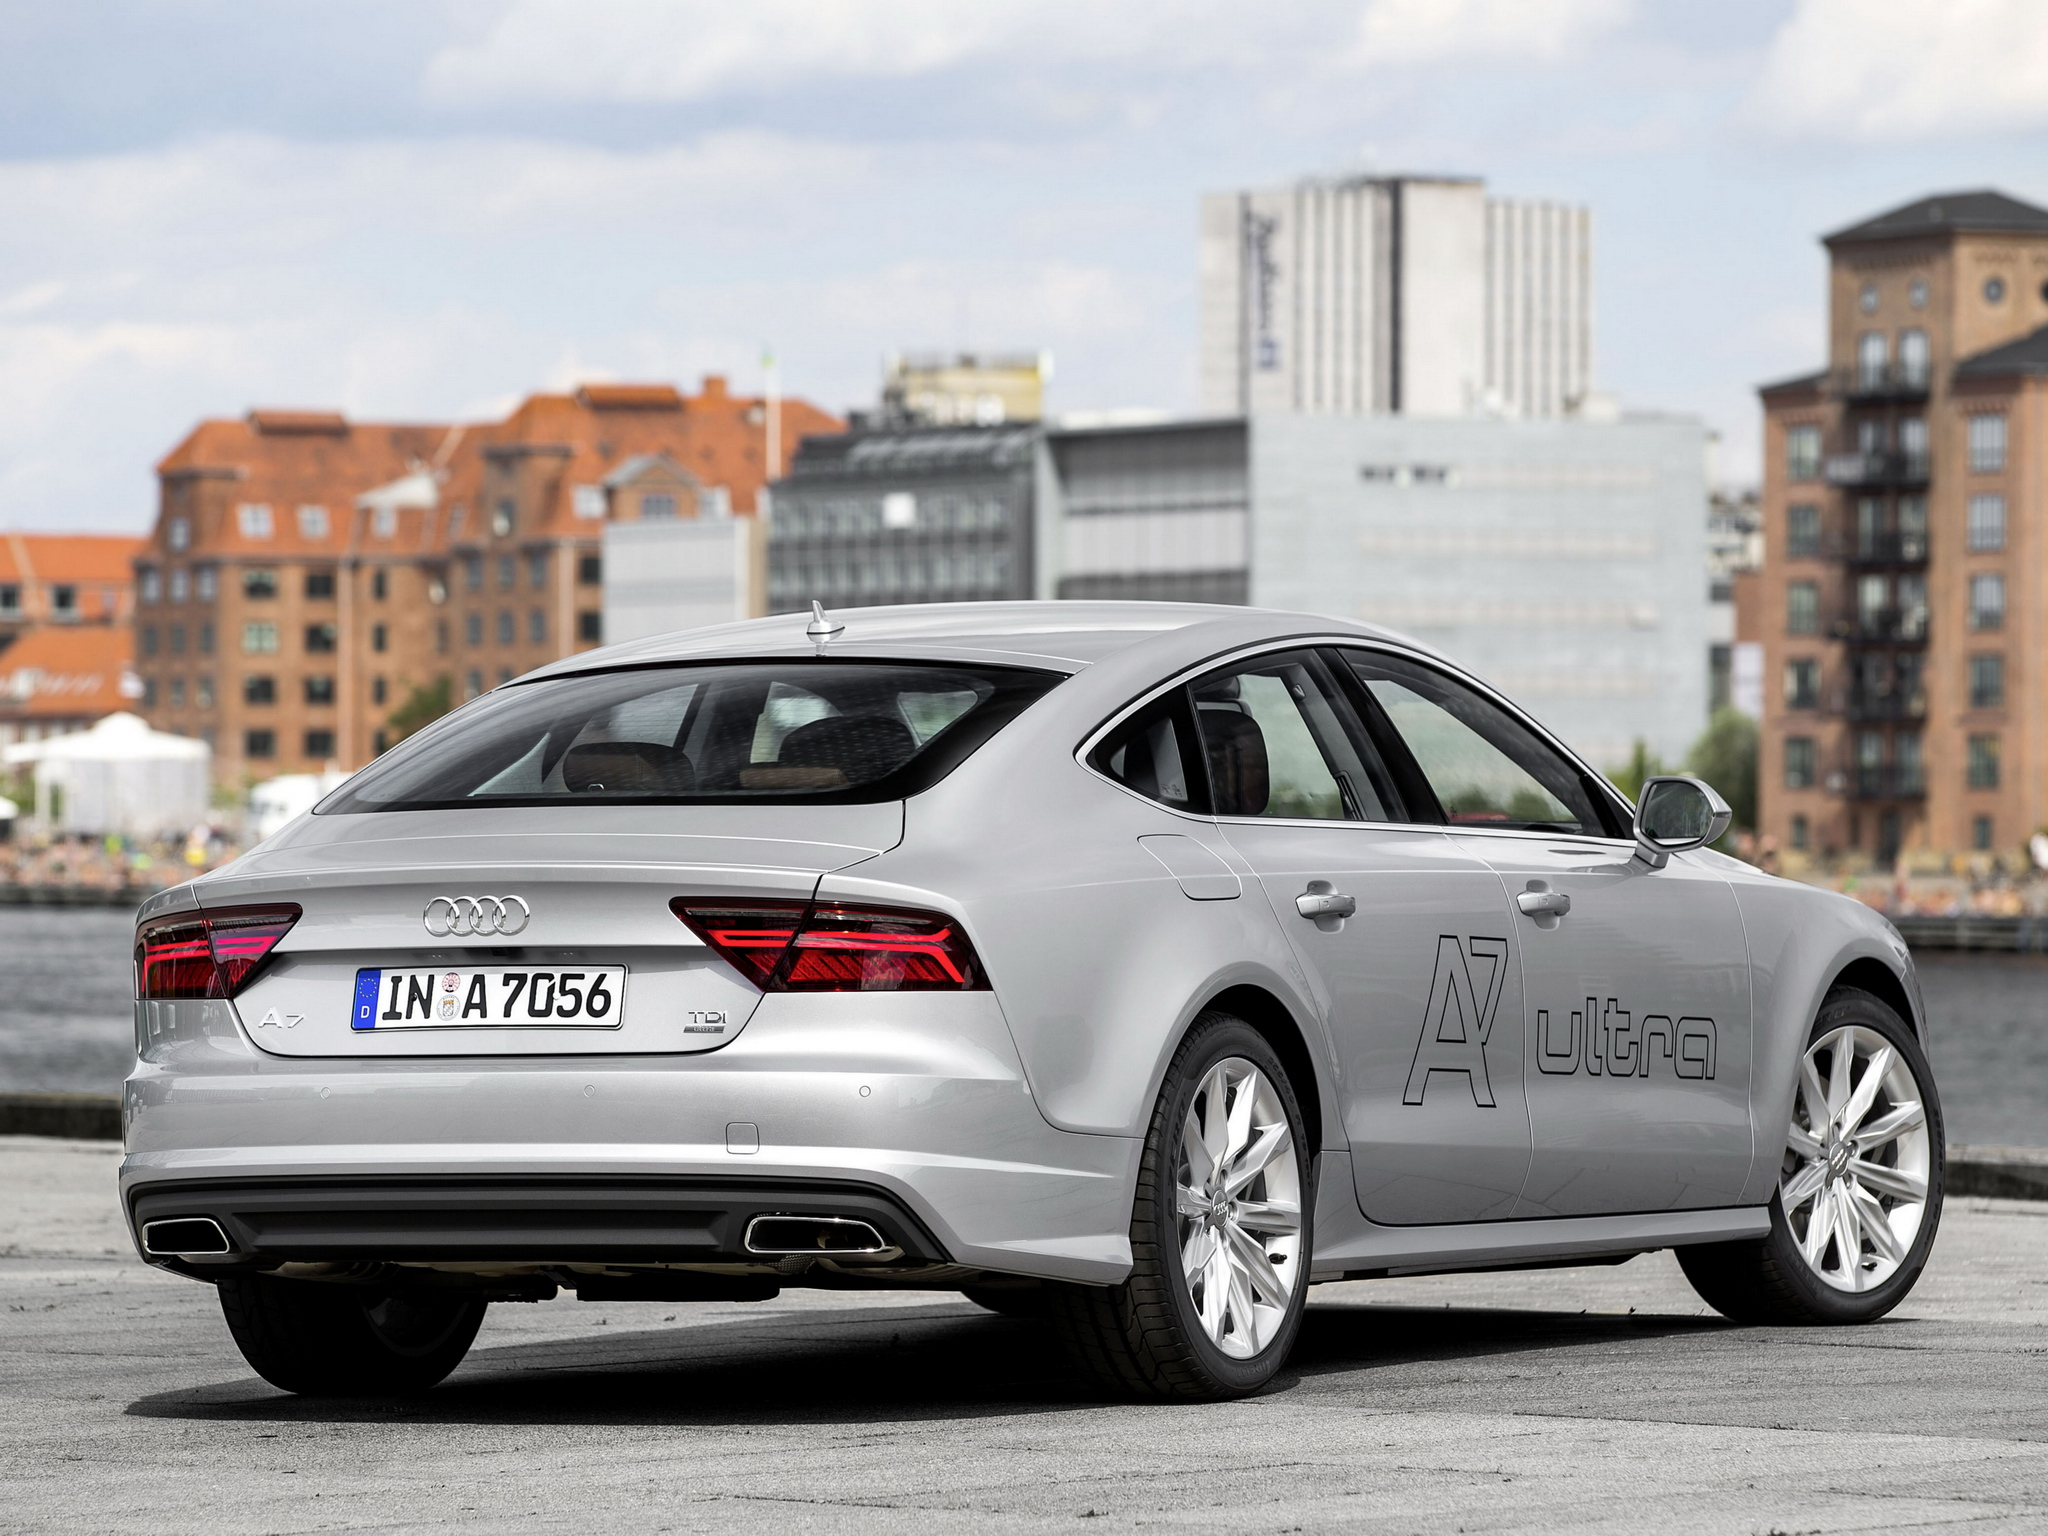 2014 Audi A7 3.0 TDI ultra Launched in Germany: Details and Pricing